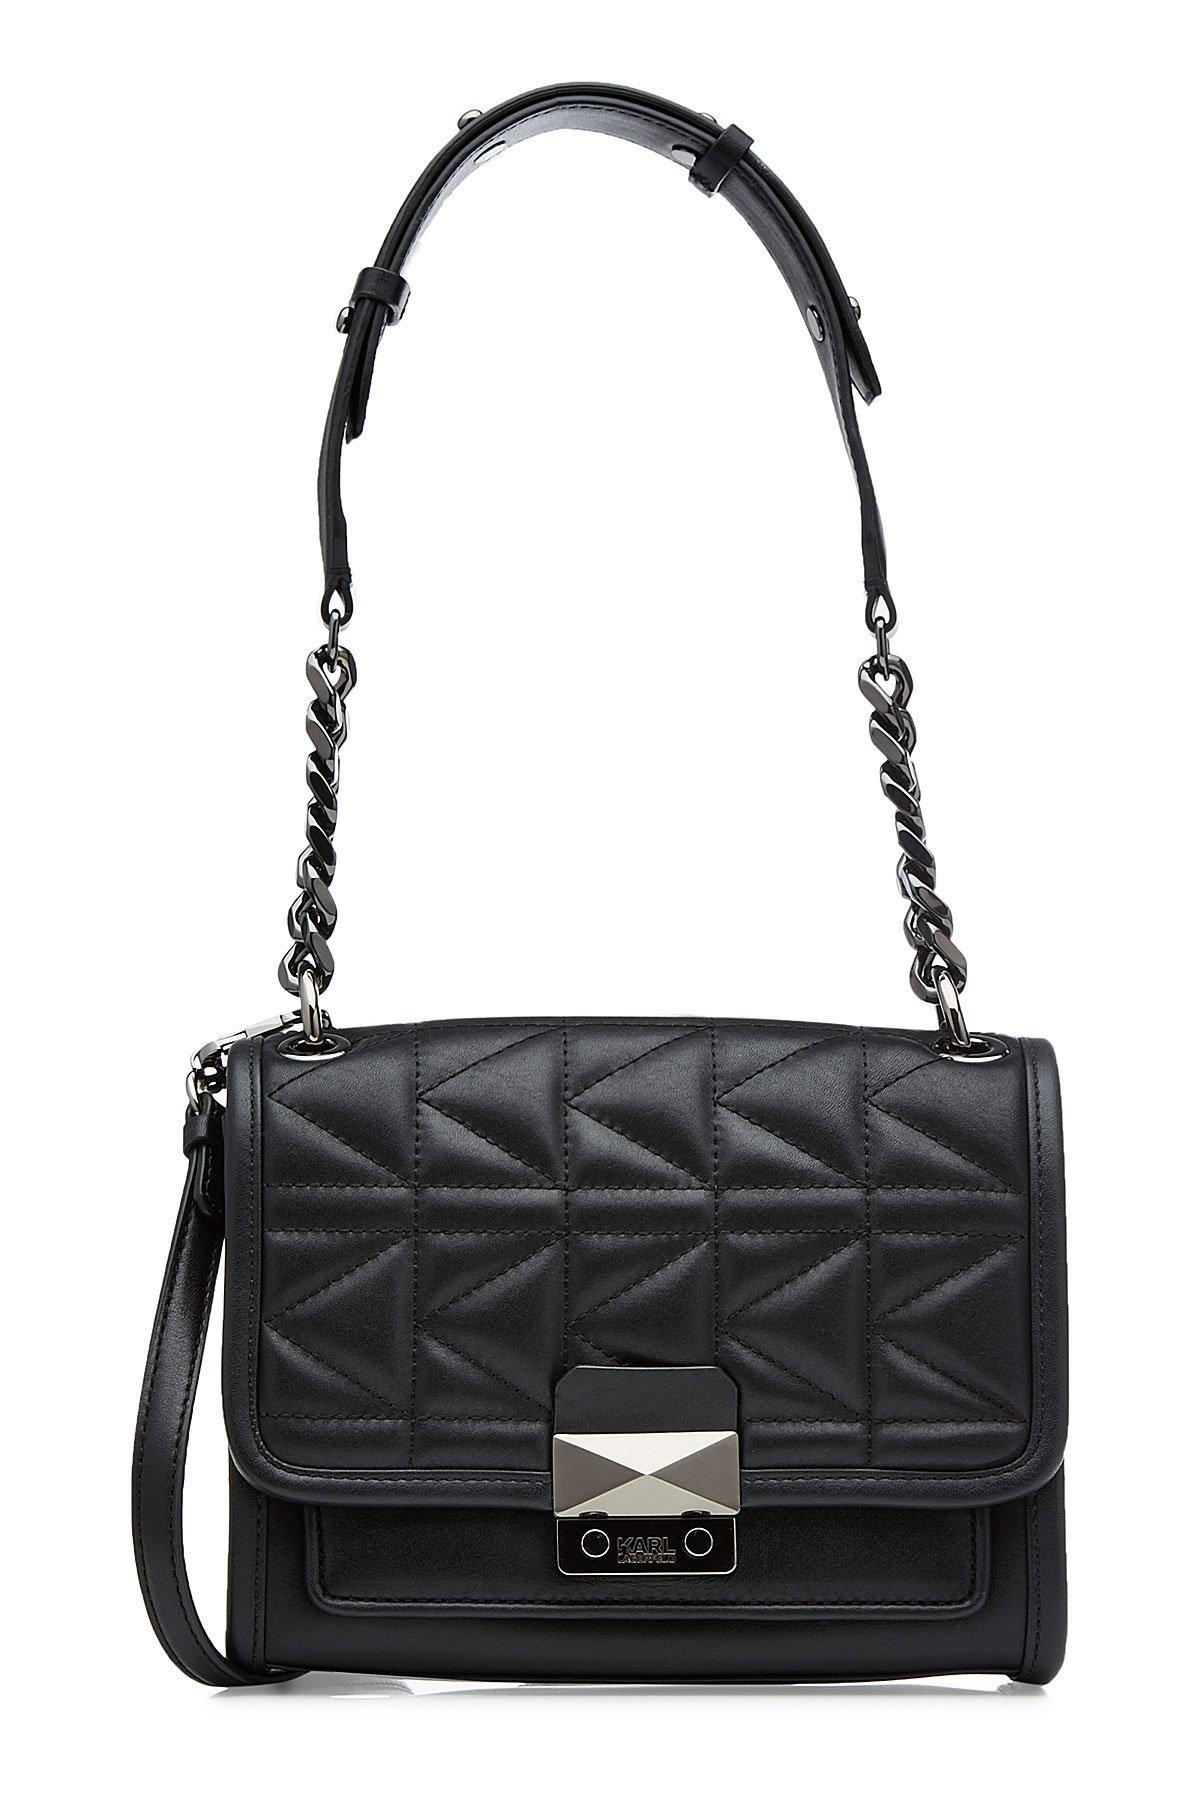 Karl Lagerfeld K/Kuilted Mini Leather Handbag In Black